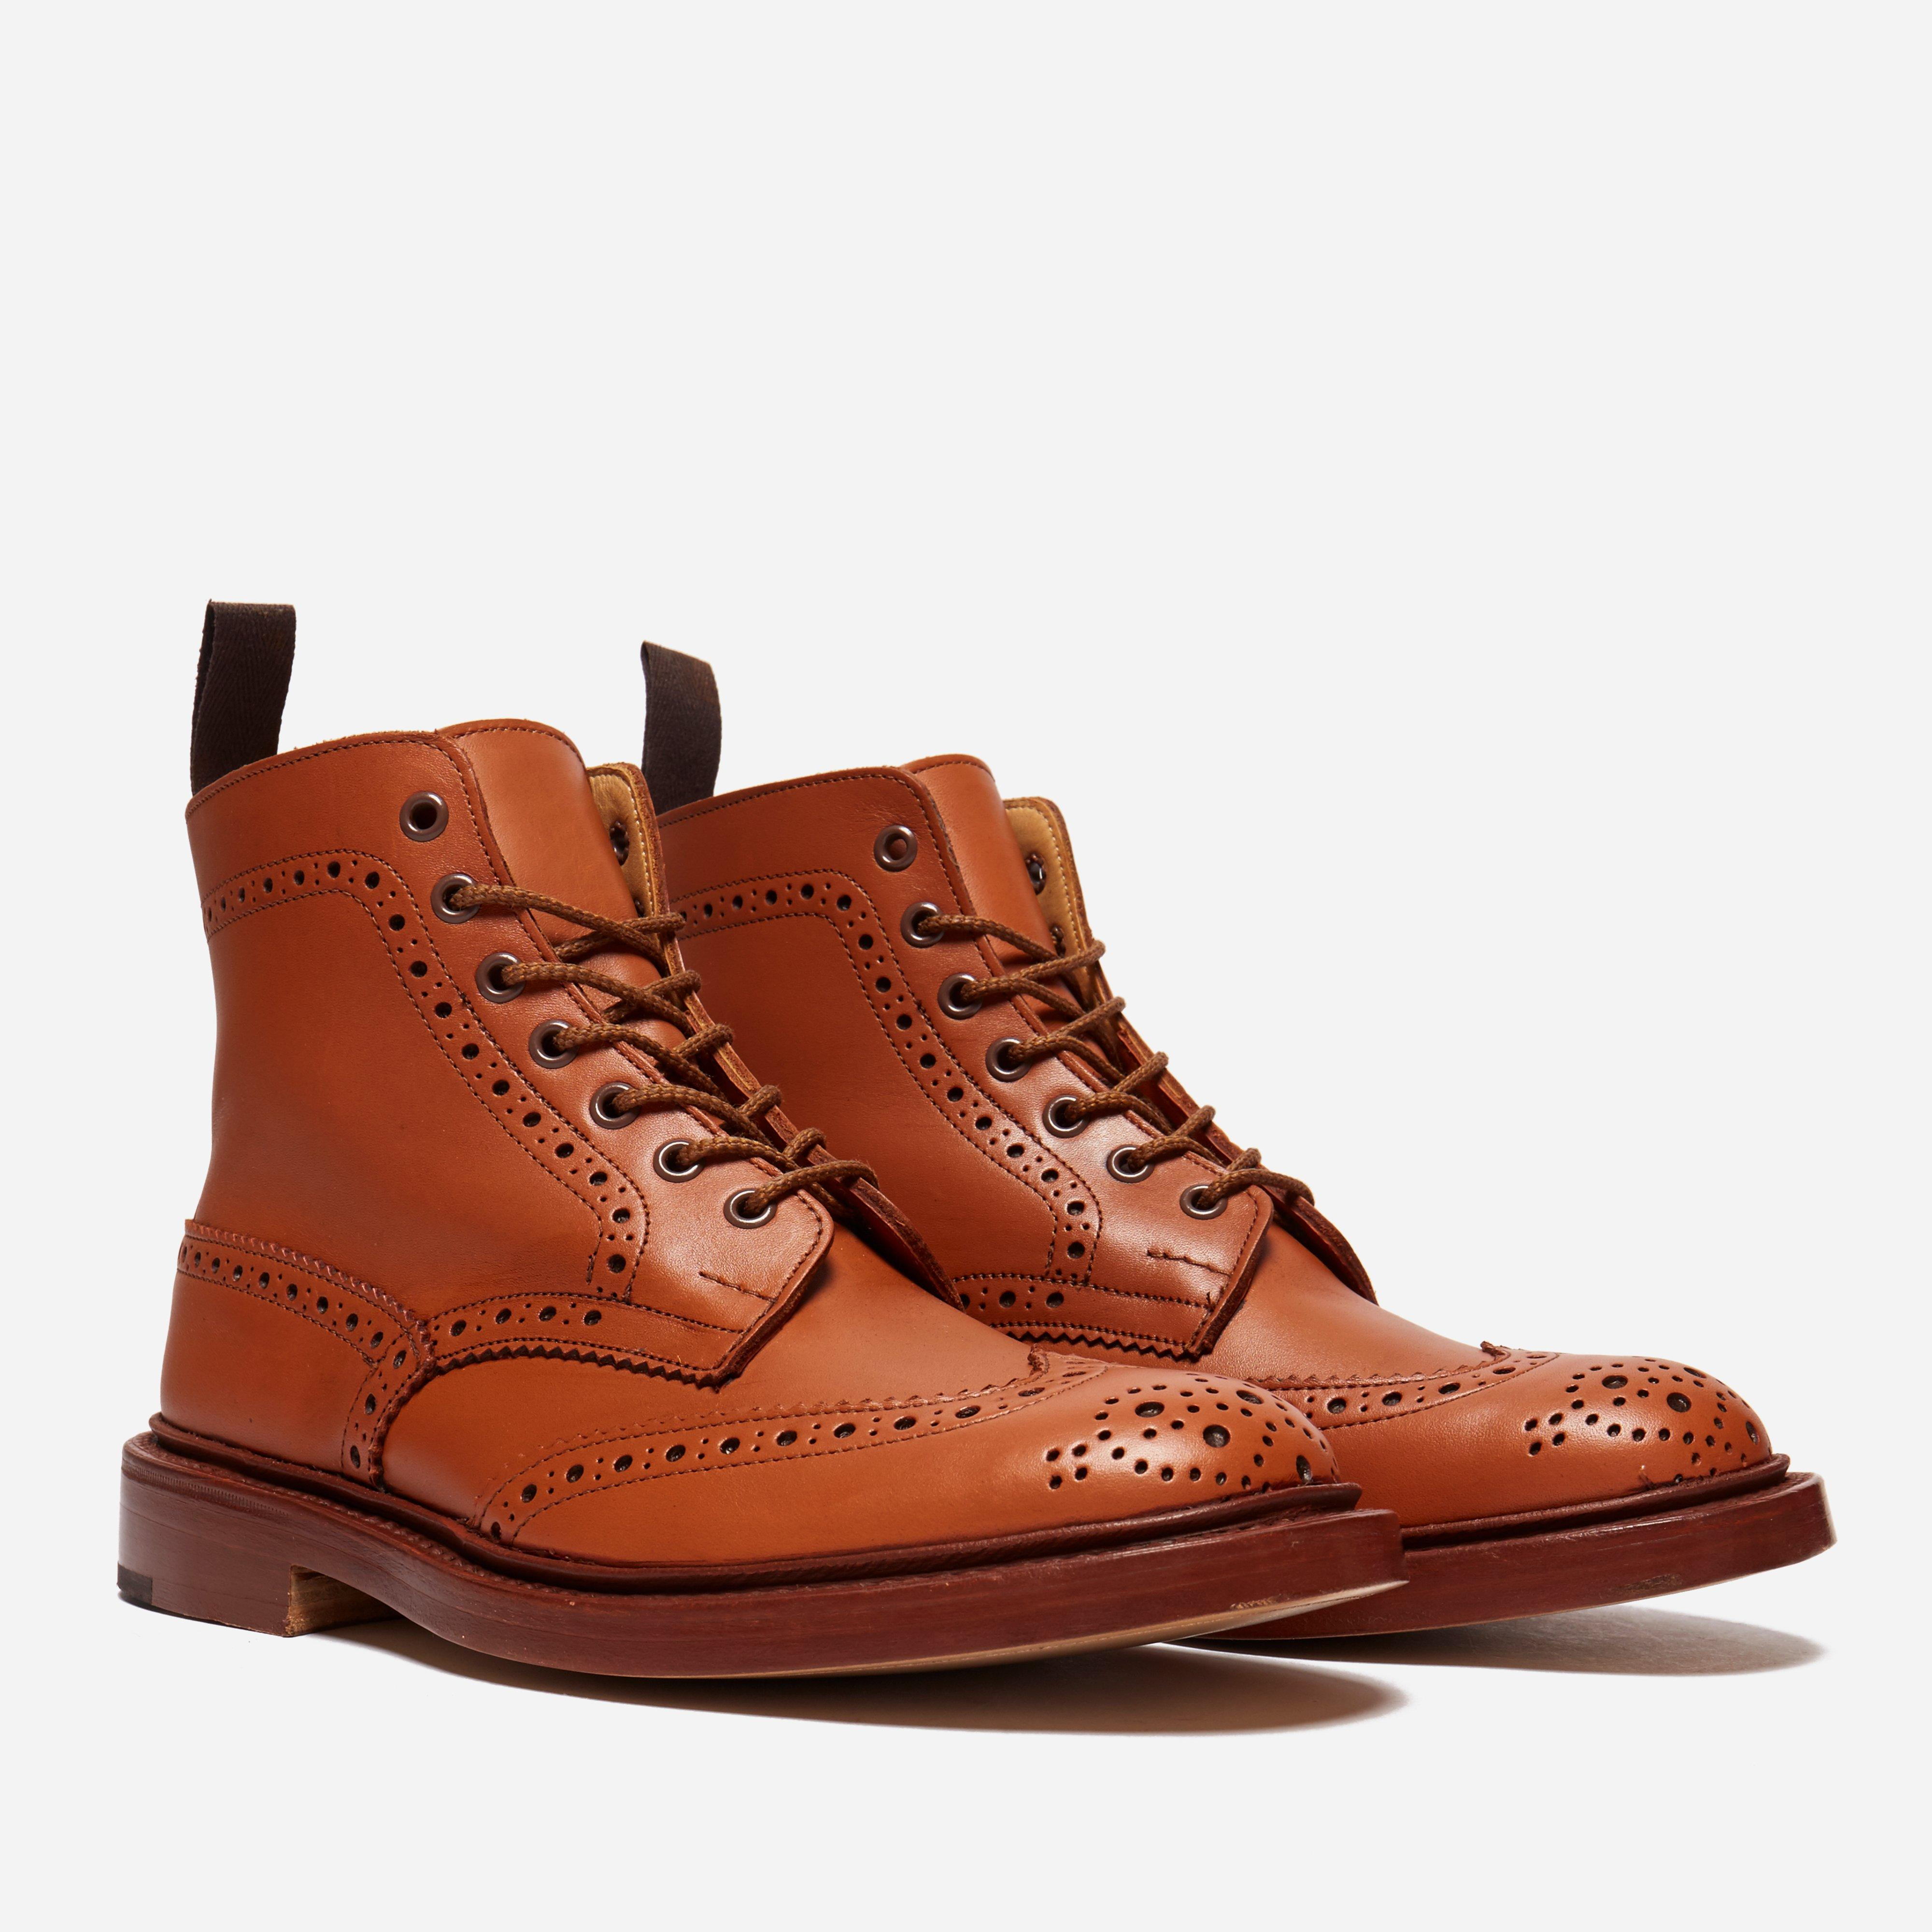 Trickers Stow C Shade Boot